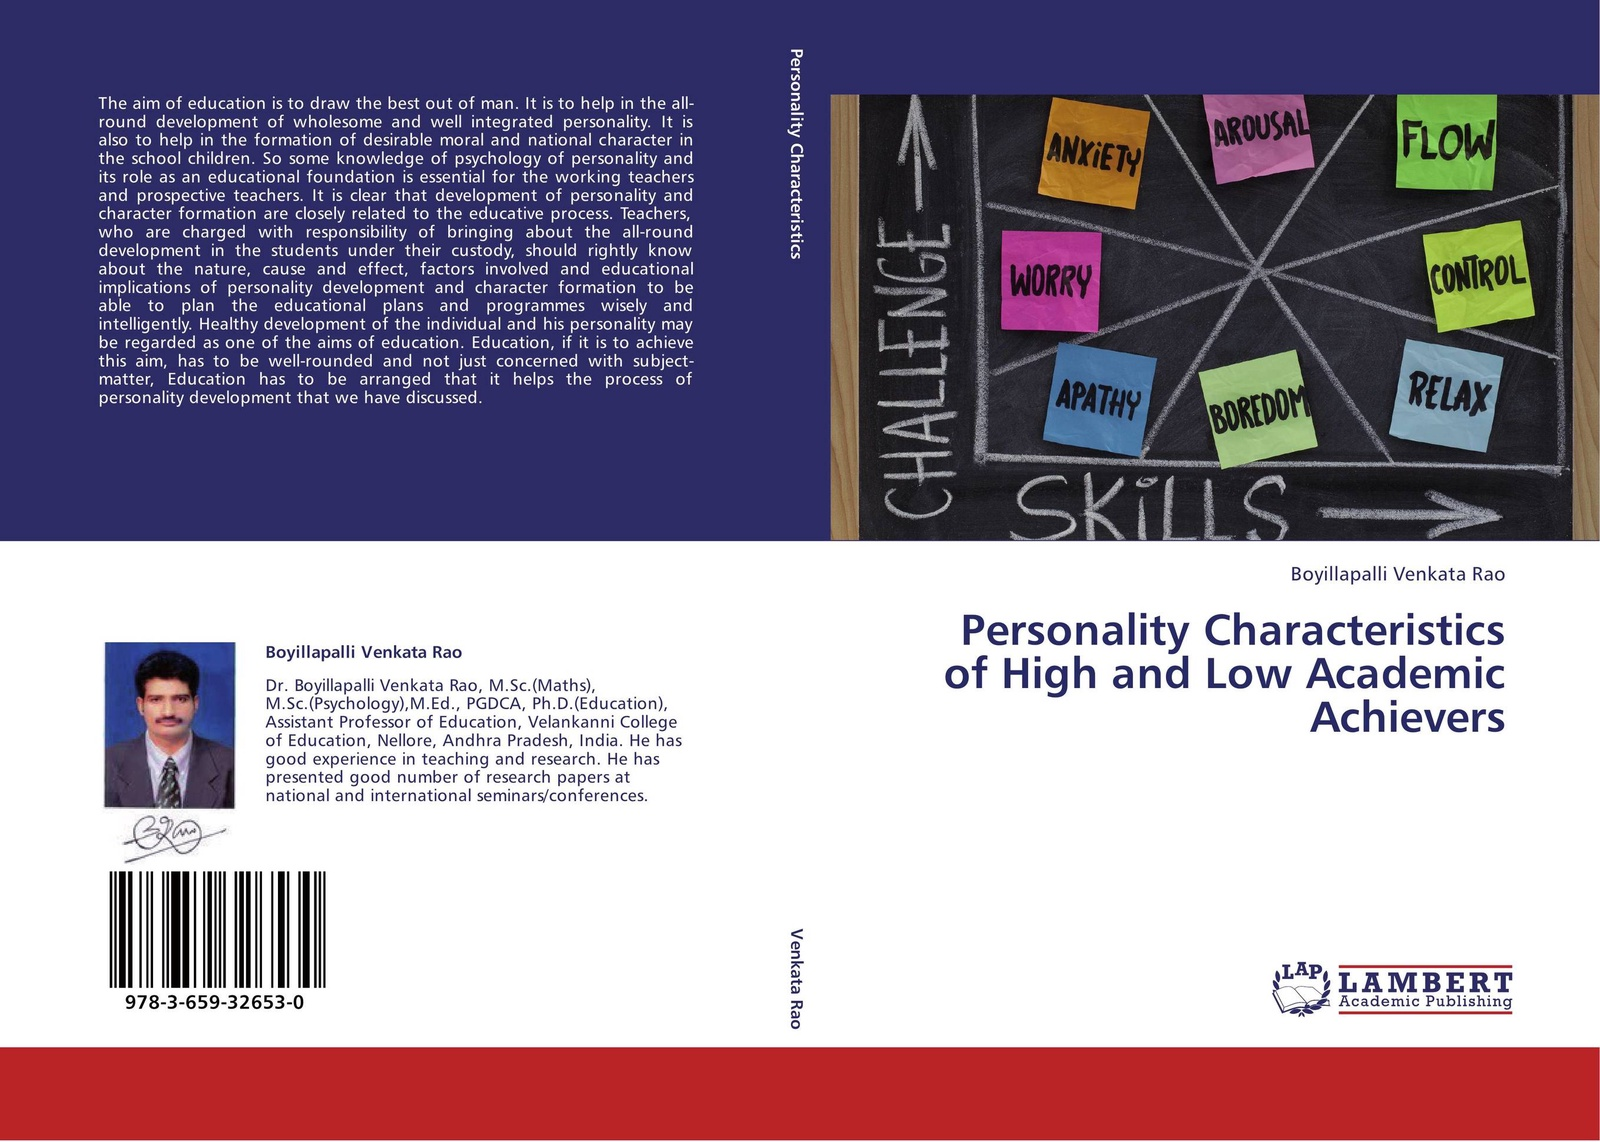 Boyillapalli Venkata Rao Personality Characteristics of High and Low Academic Achievers afifa khanam effect of religious education on the moral development of children